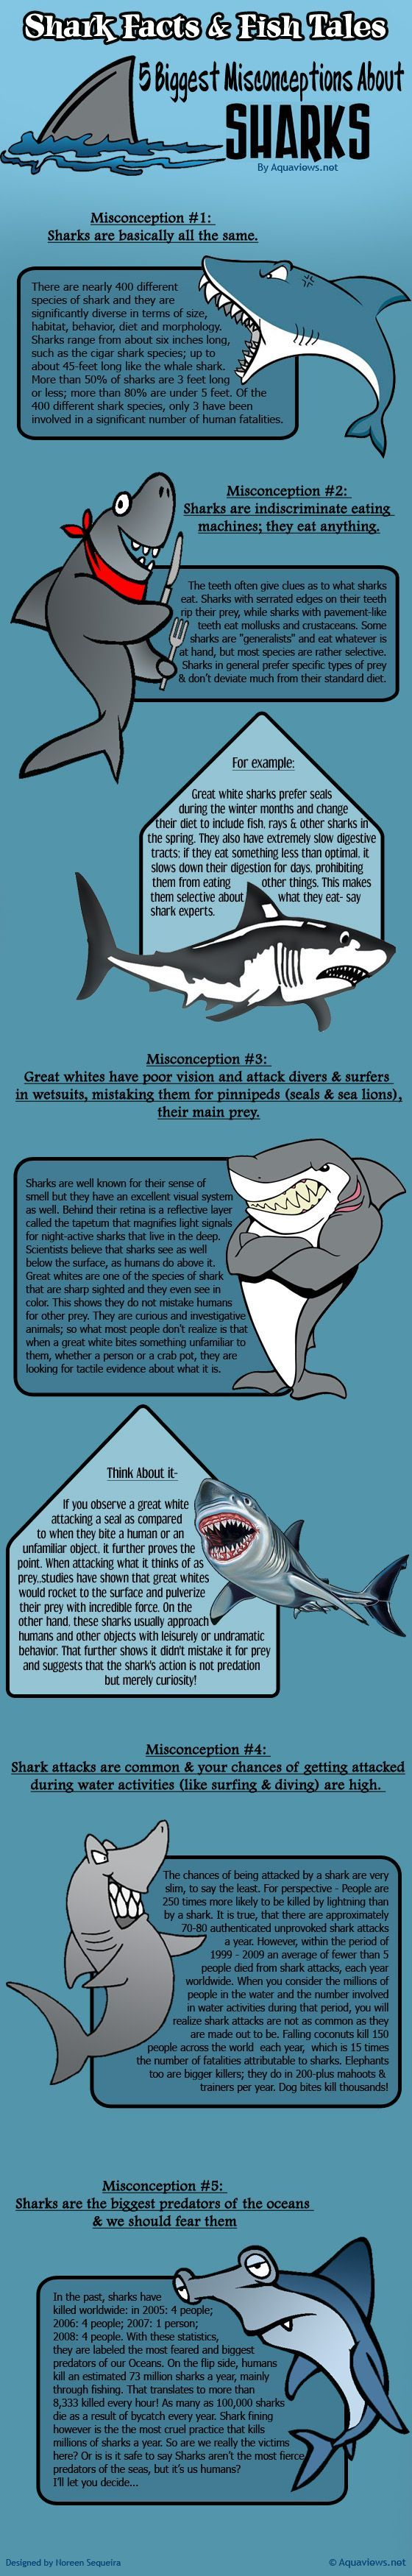 Infographic Sharks Count Why It s Important To Save Sharks